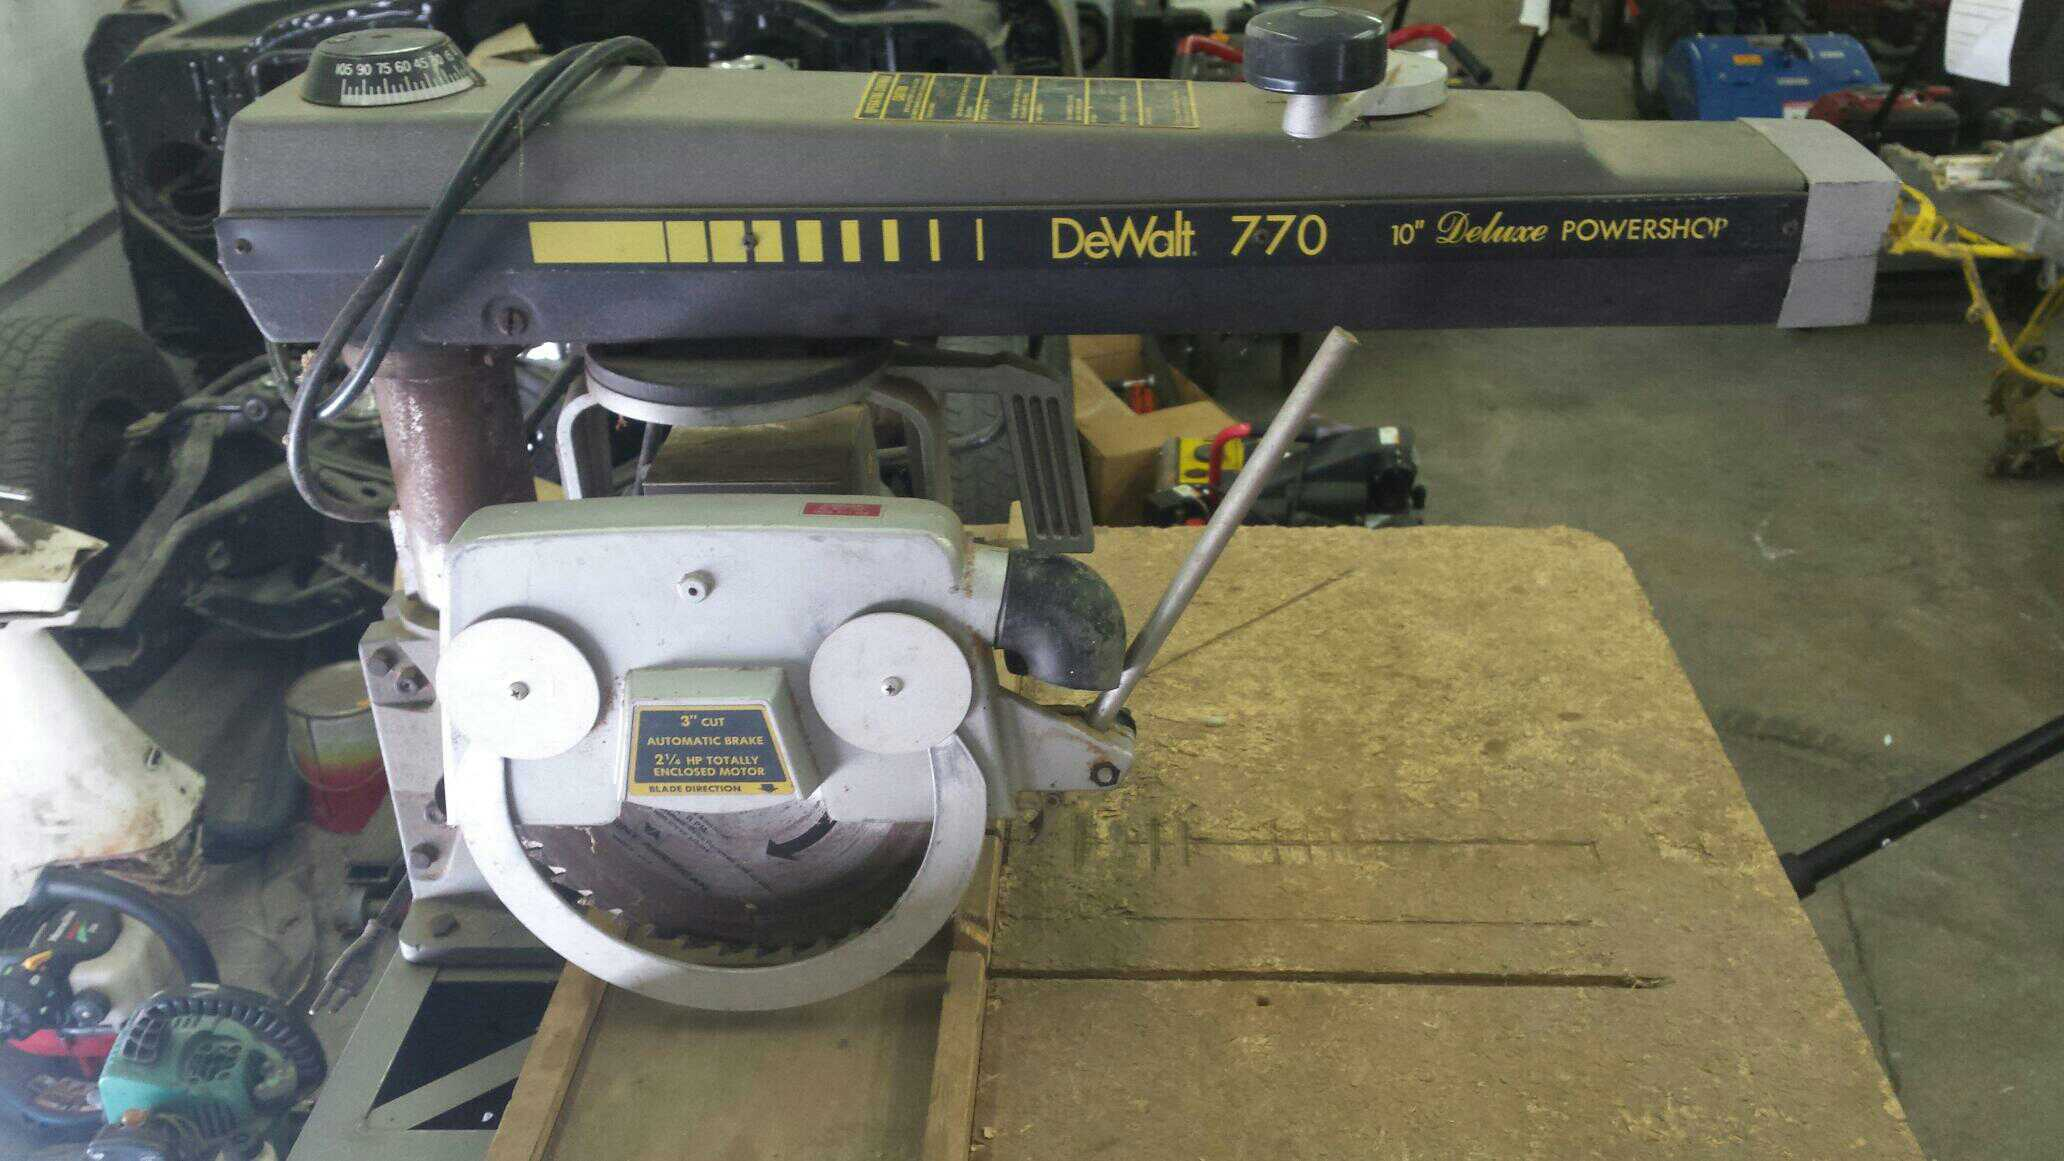 Hedendaags Find more Reduced! Need It Gone! Dewalt 770 Radial Arm Saw for BZ-22